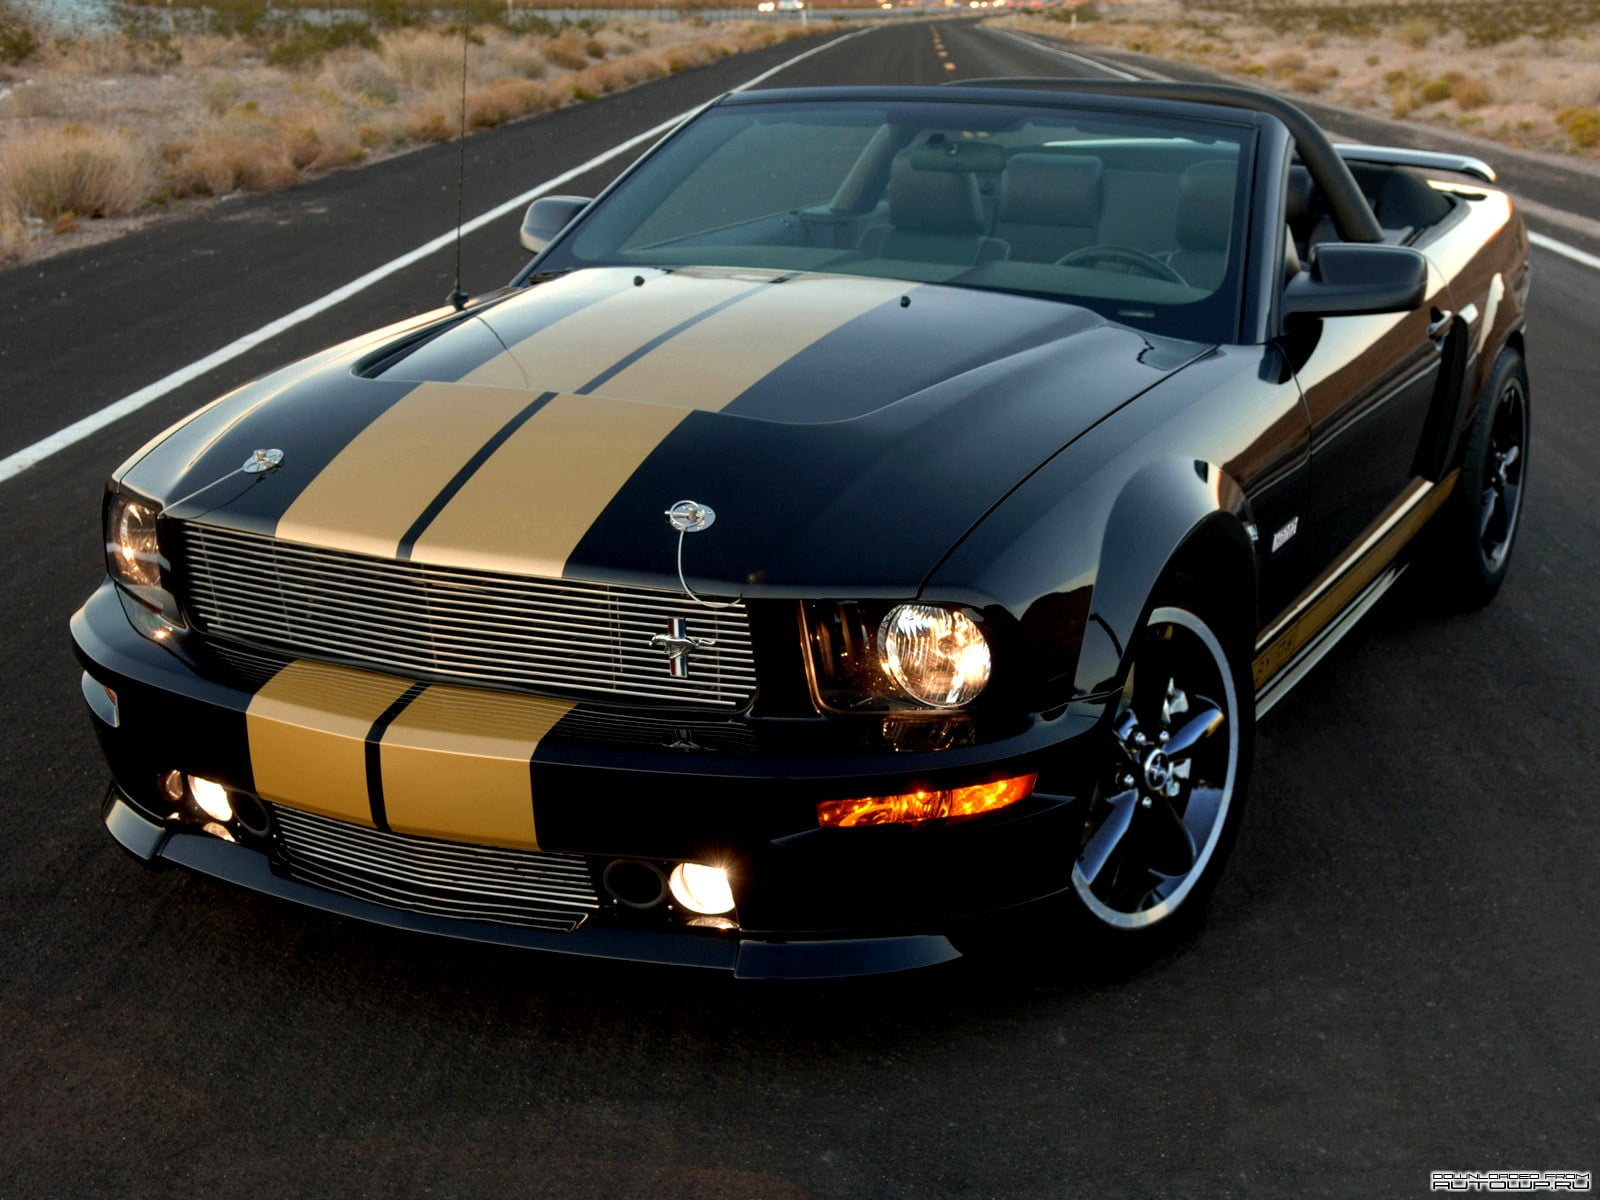 Black And Brown Ford Mustang Convertible Coupe Car Shelby Gt500